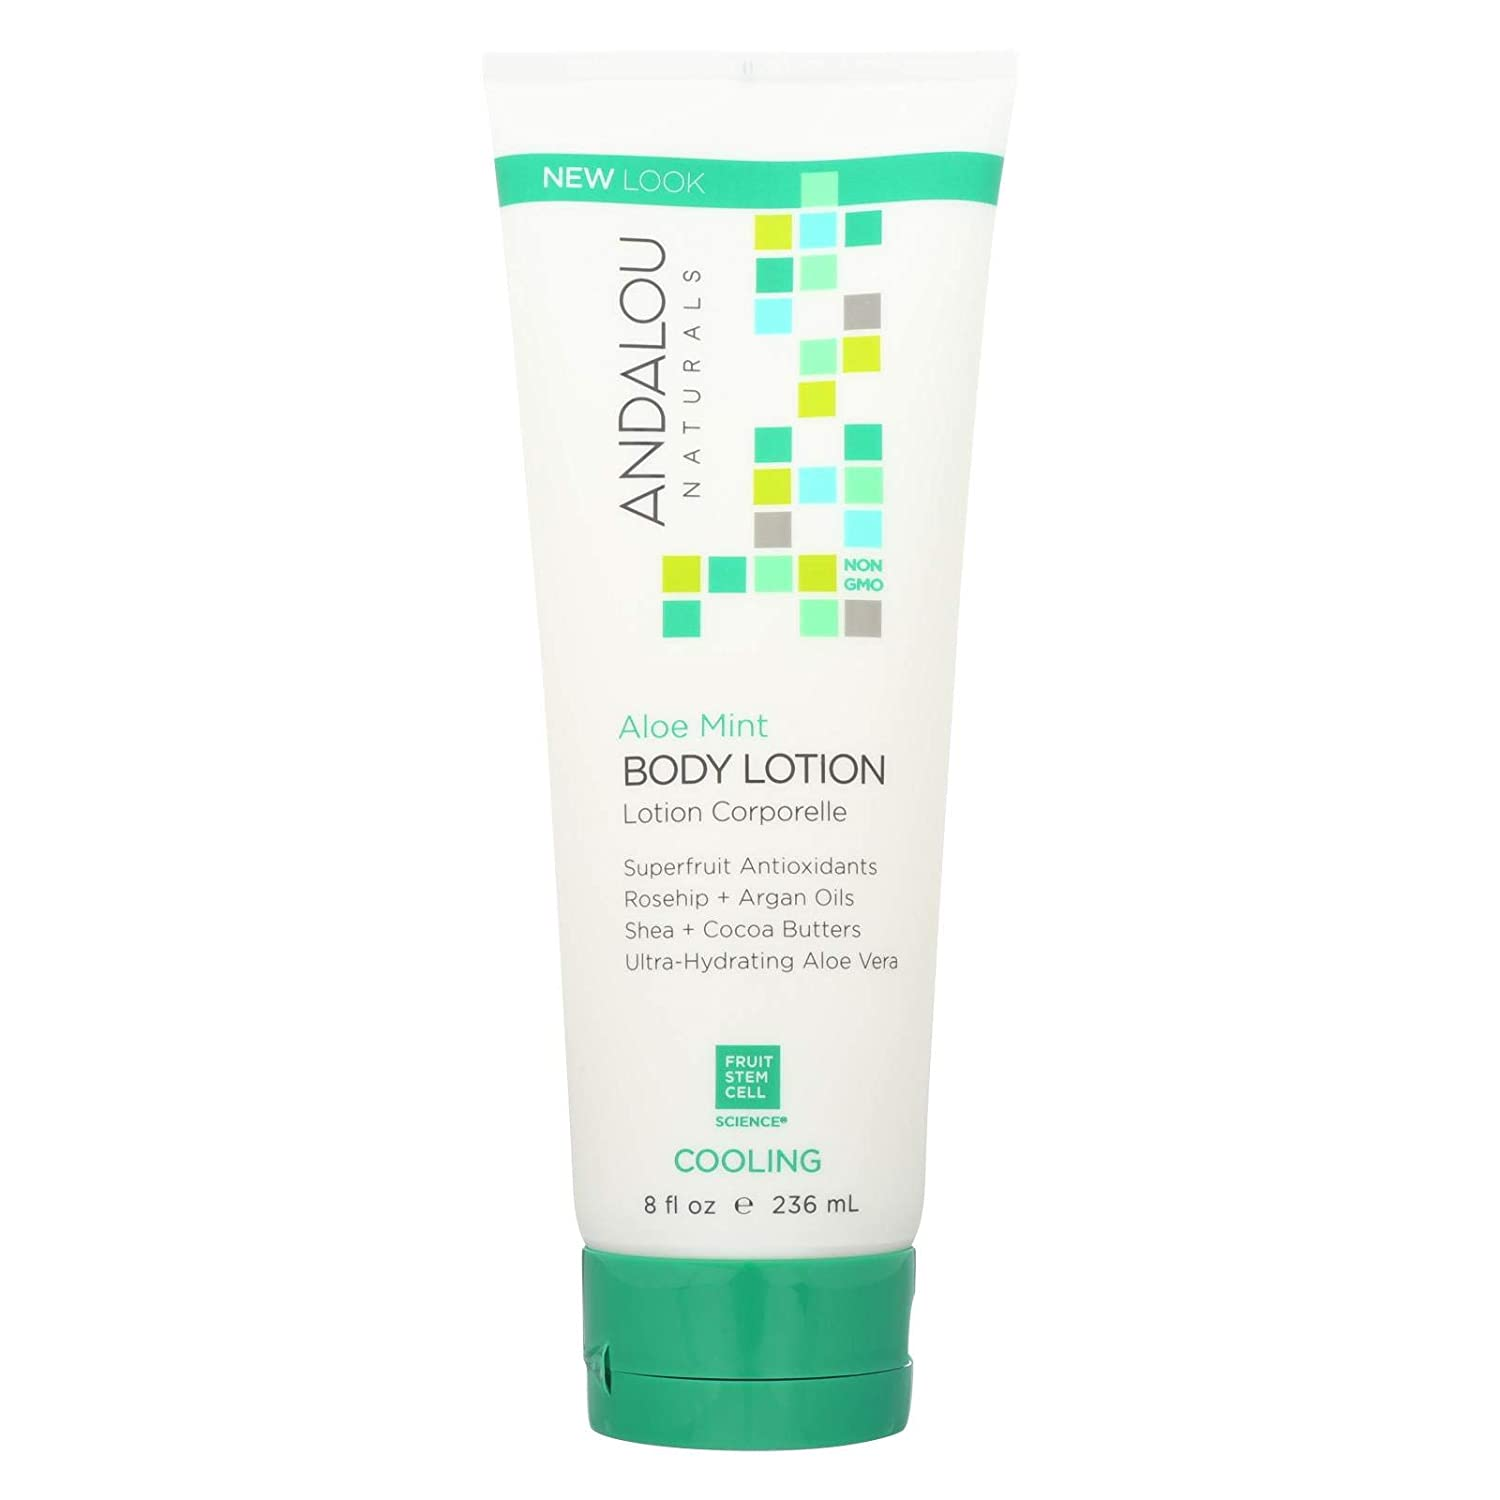 Andalou Naturals Body Lotion - Aloe Mint Cooling - 8 fl oz